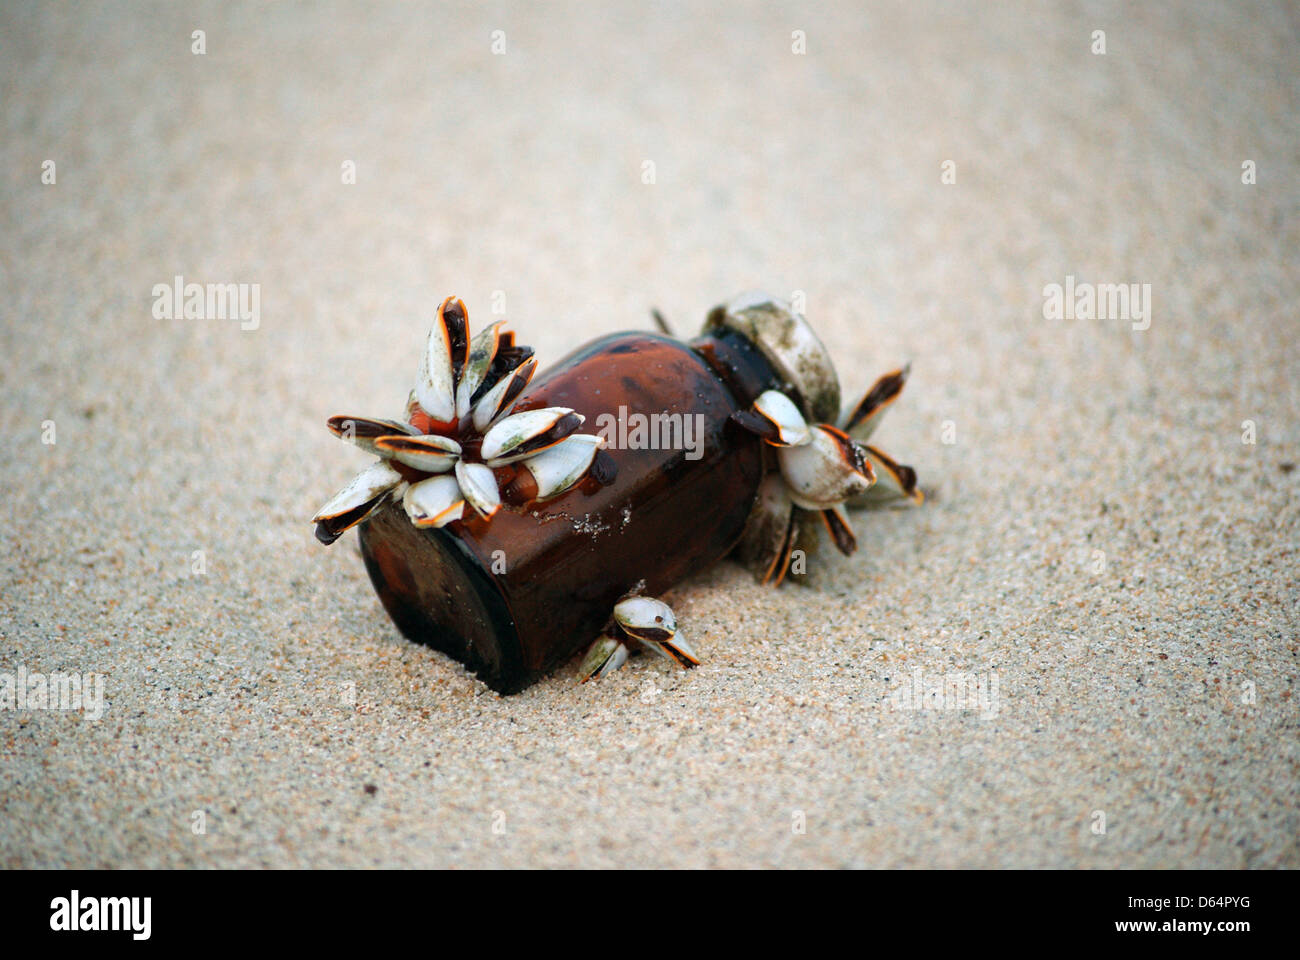 barnacles on a brown glass bottle on the indonesian beach, rubbish washed up on the beach in indonesia - Stock Image